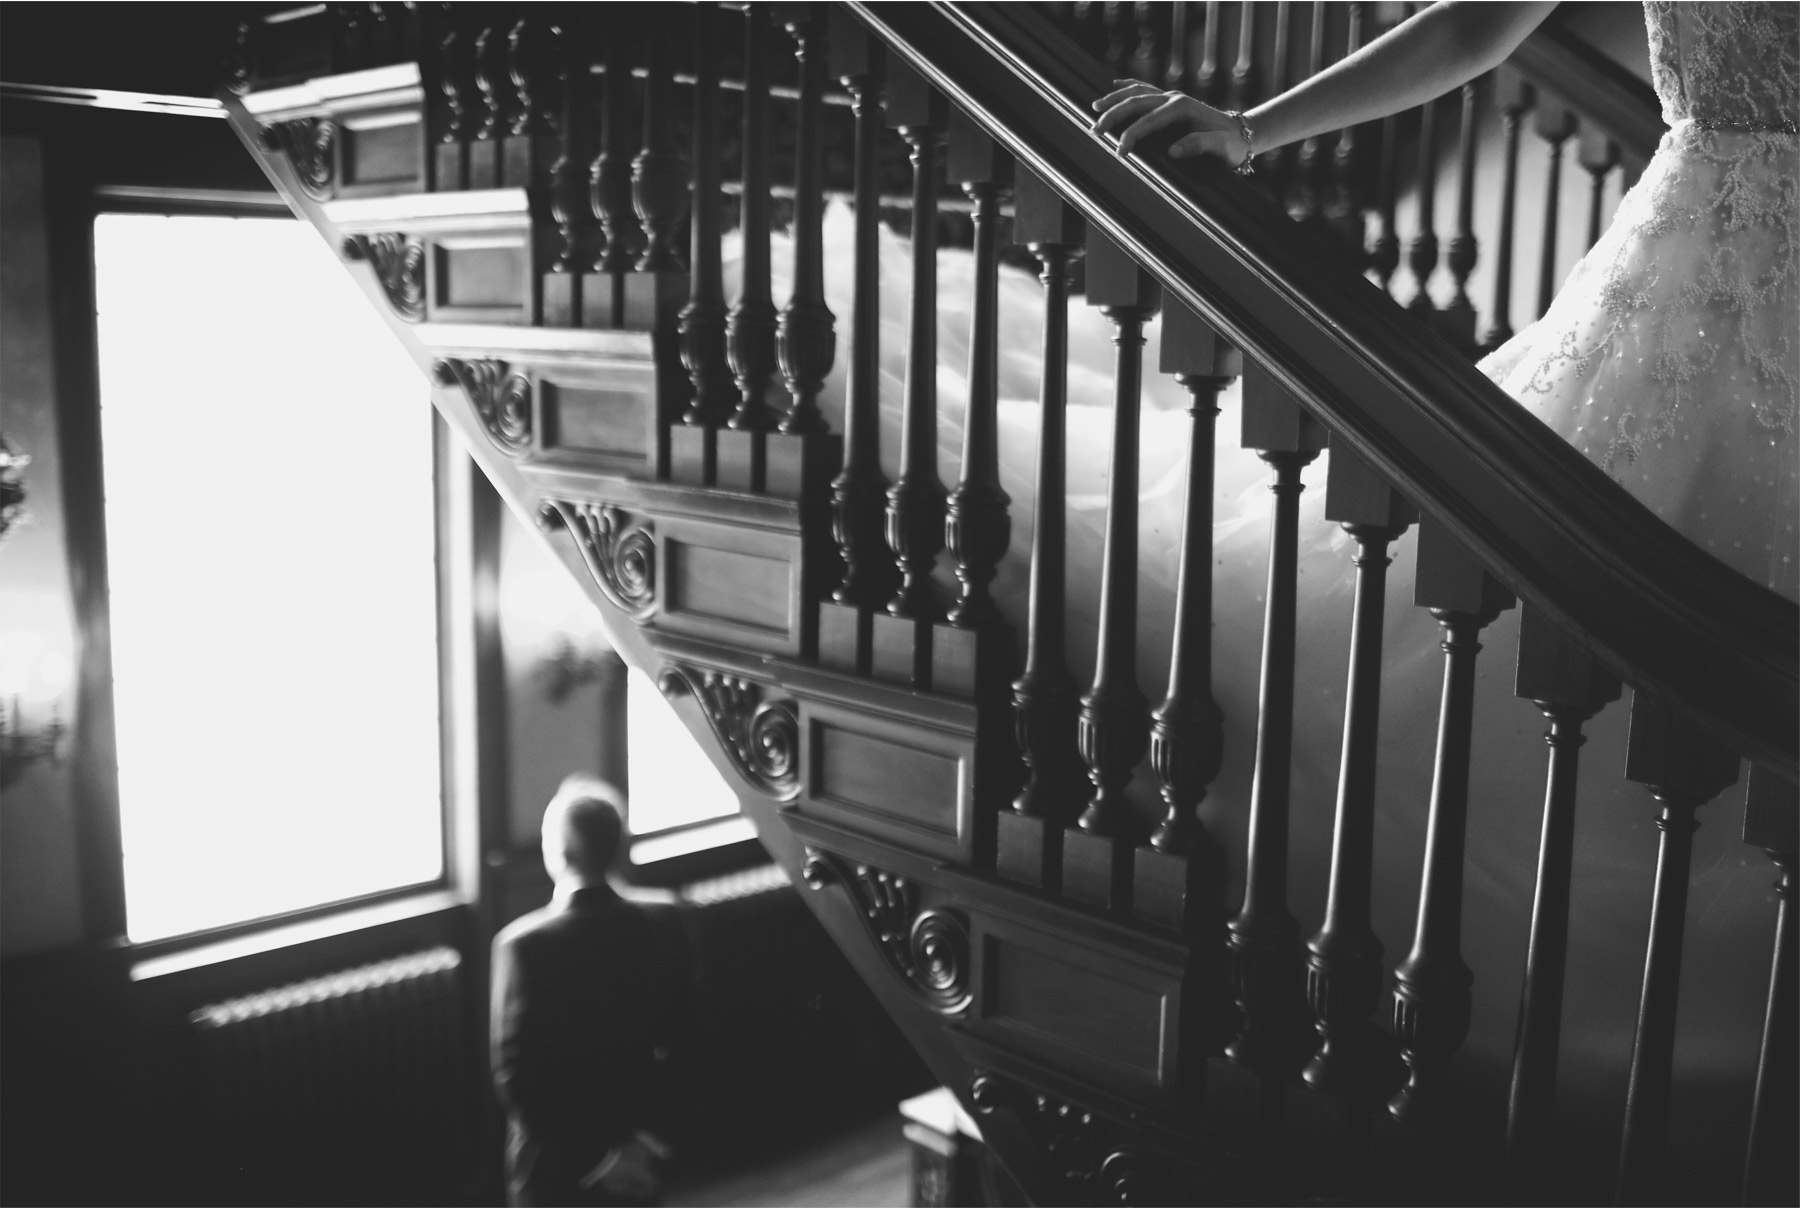 02-Minneapolis-Wedding-Photography-by-Vick-Semple-Mansion-Stairs-First-Look-Abby-and-Jason.jpg